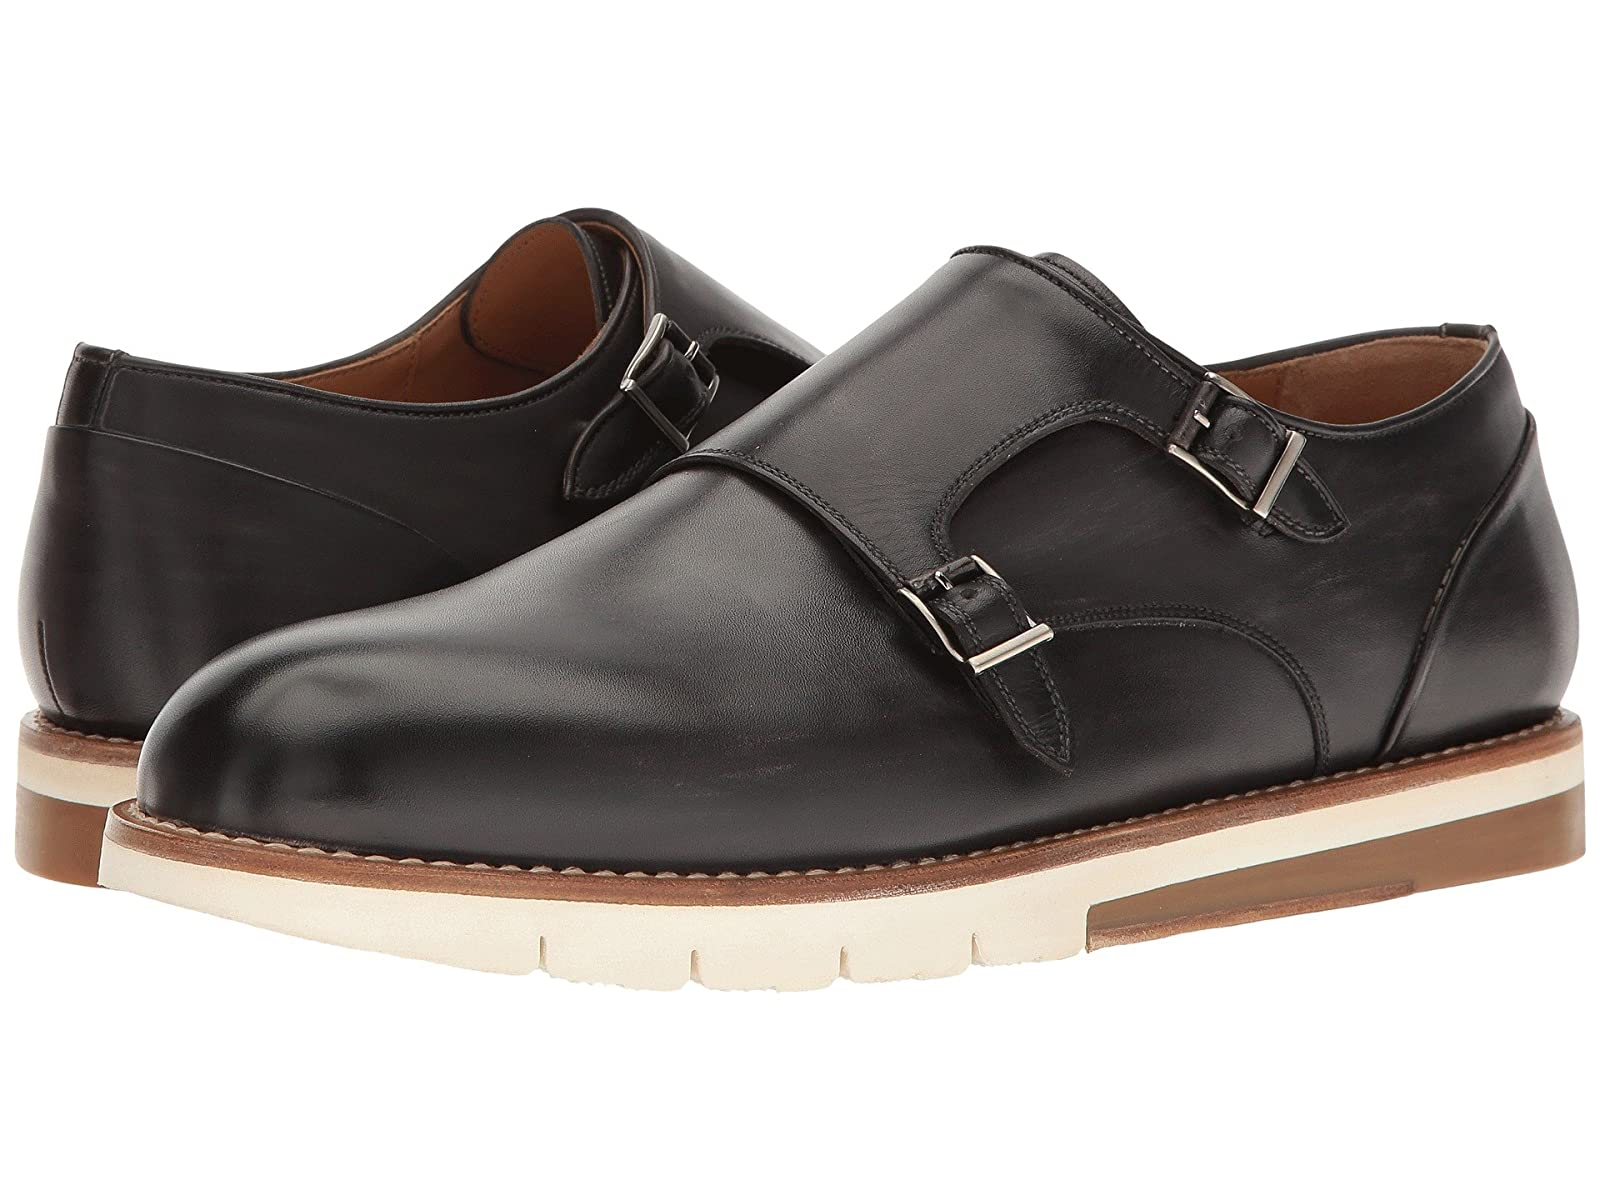 Magnanni BlanesCheap and distinctive eye-catching shoes